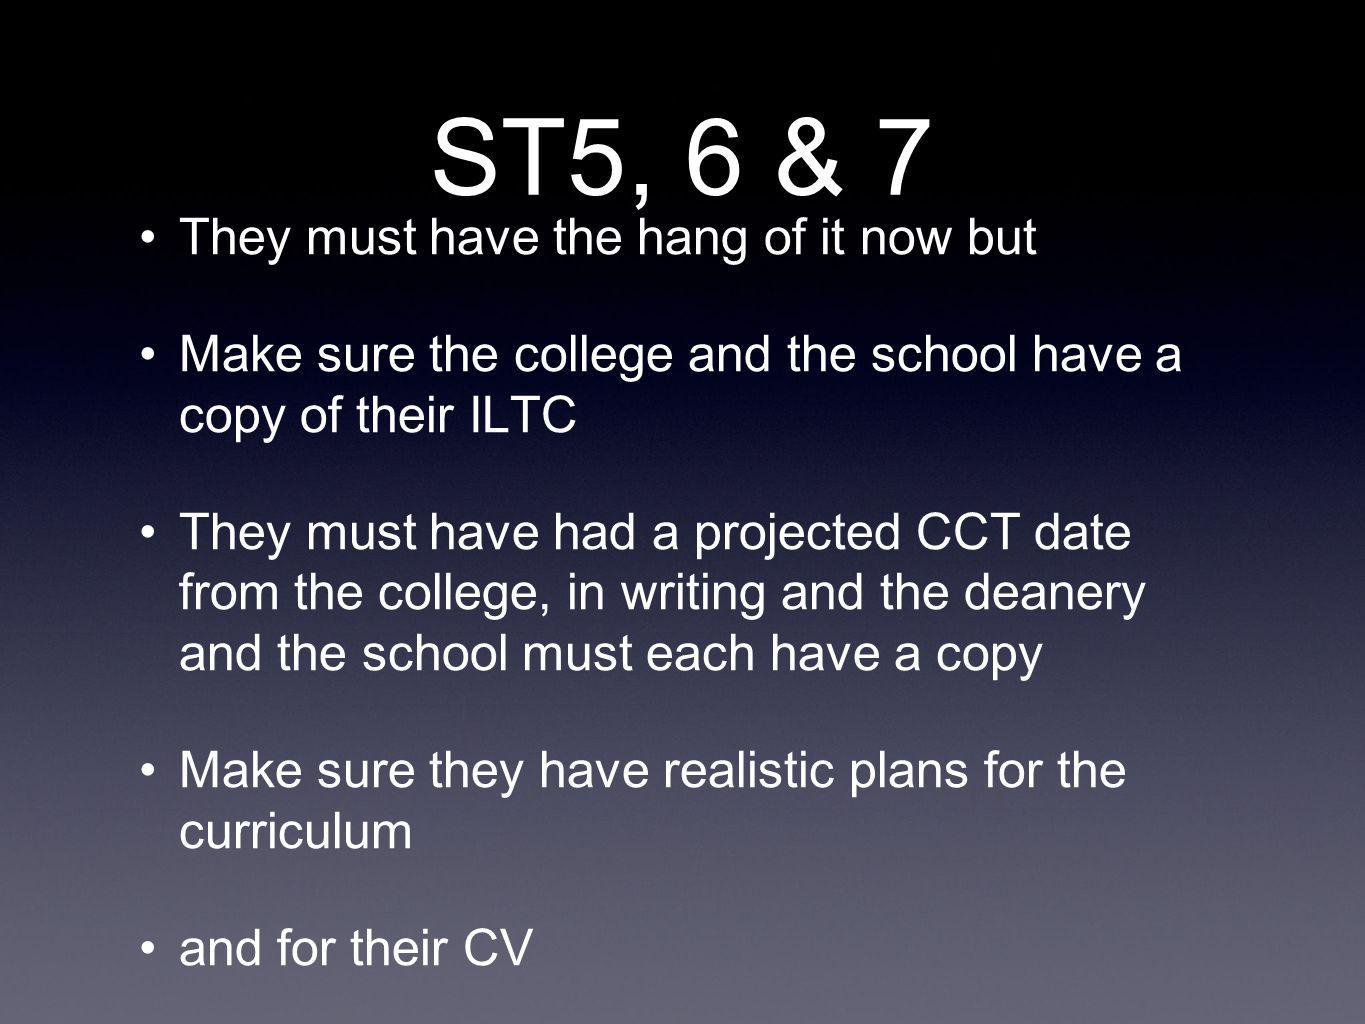 ST5, 6 & 7 They must have the hang of it now but Make sure the college and the school have a copy of their ILTC They must have had a projected CCT date from the college, in writing and the deanery and the school must each have a copy Make sure they have realistic plans for the curriculum and for their CV